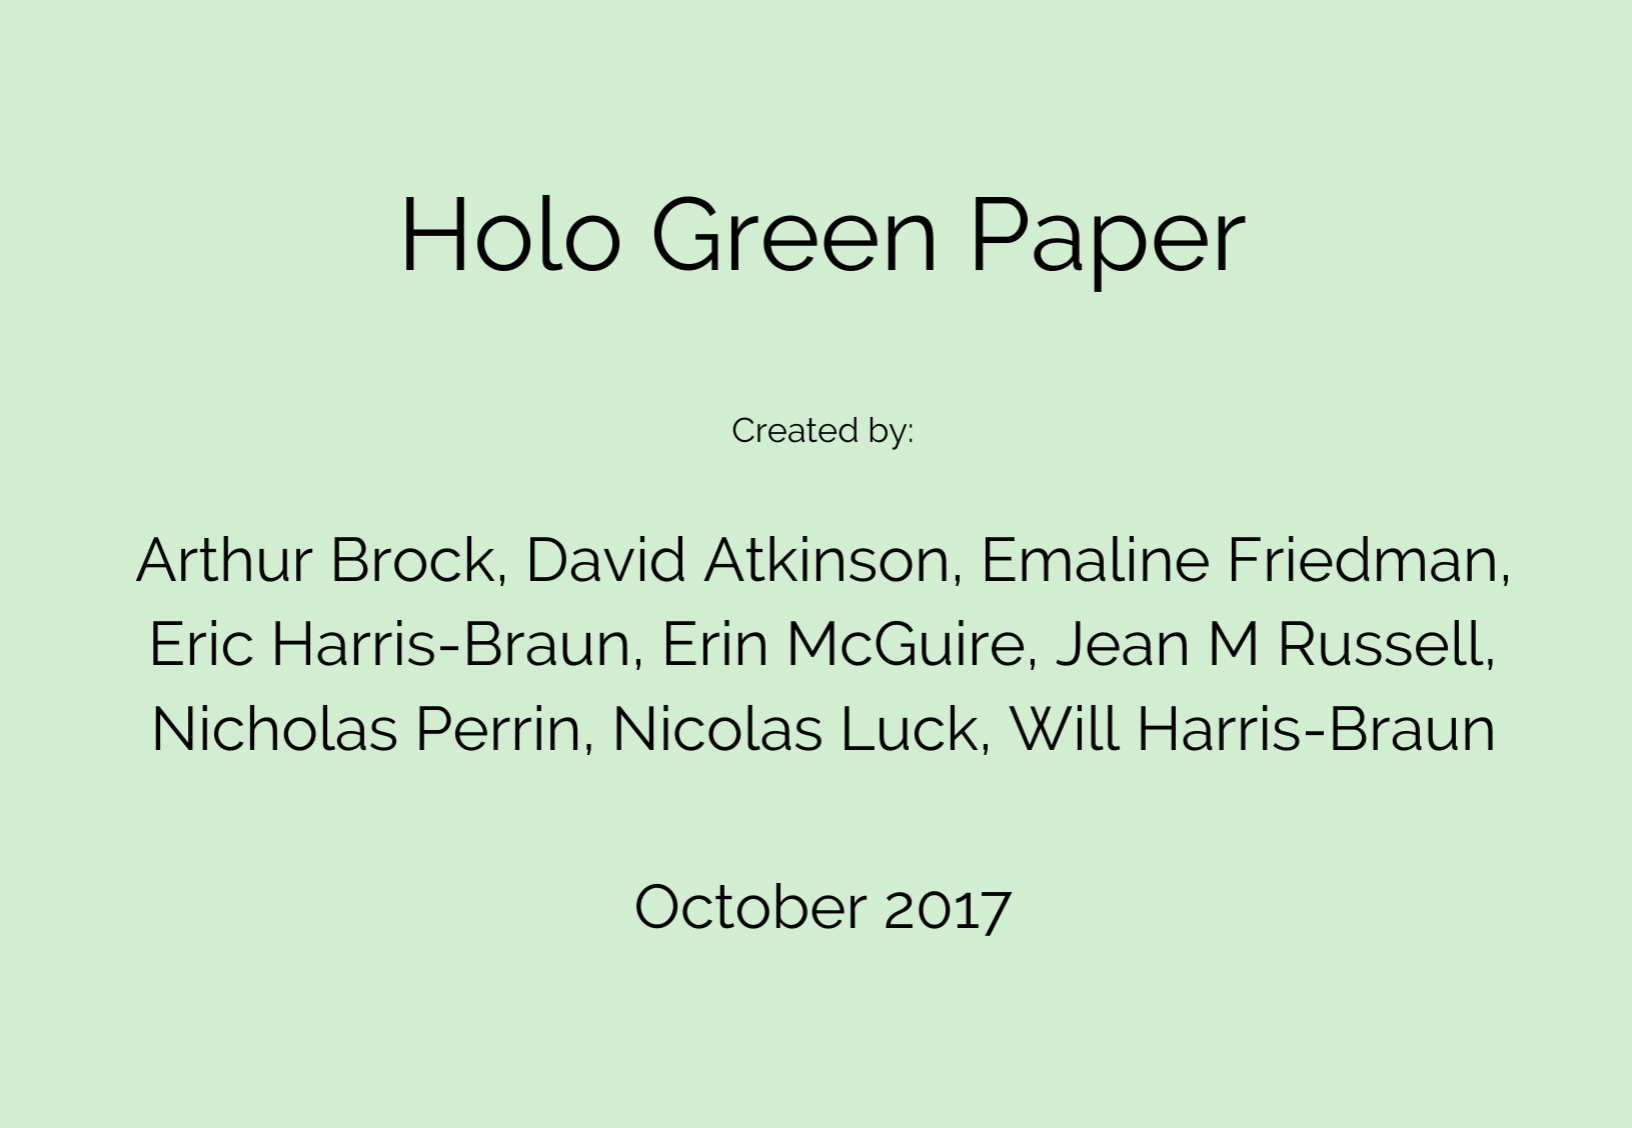 screenshot of Holo greenpaper